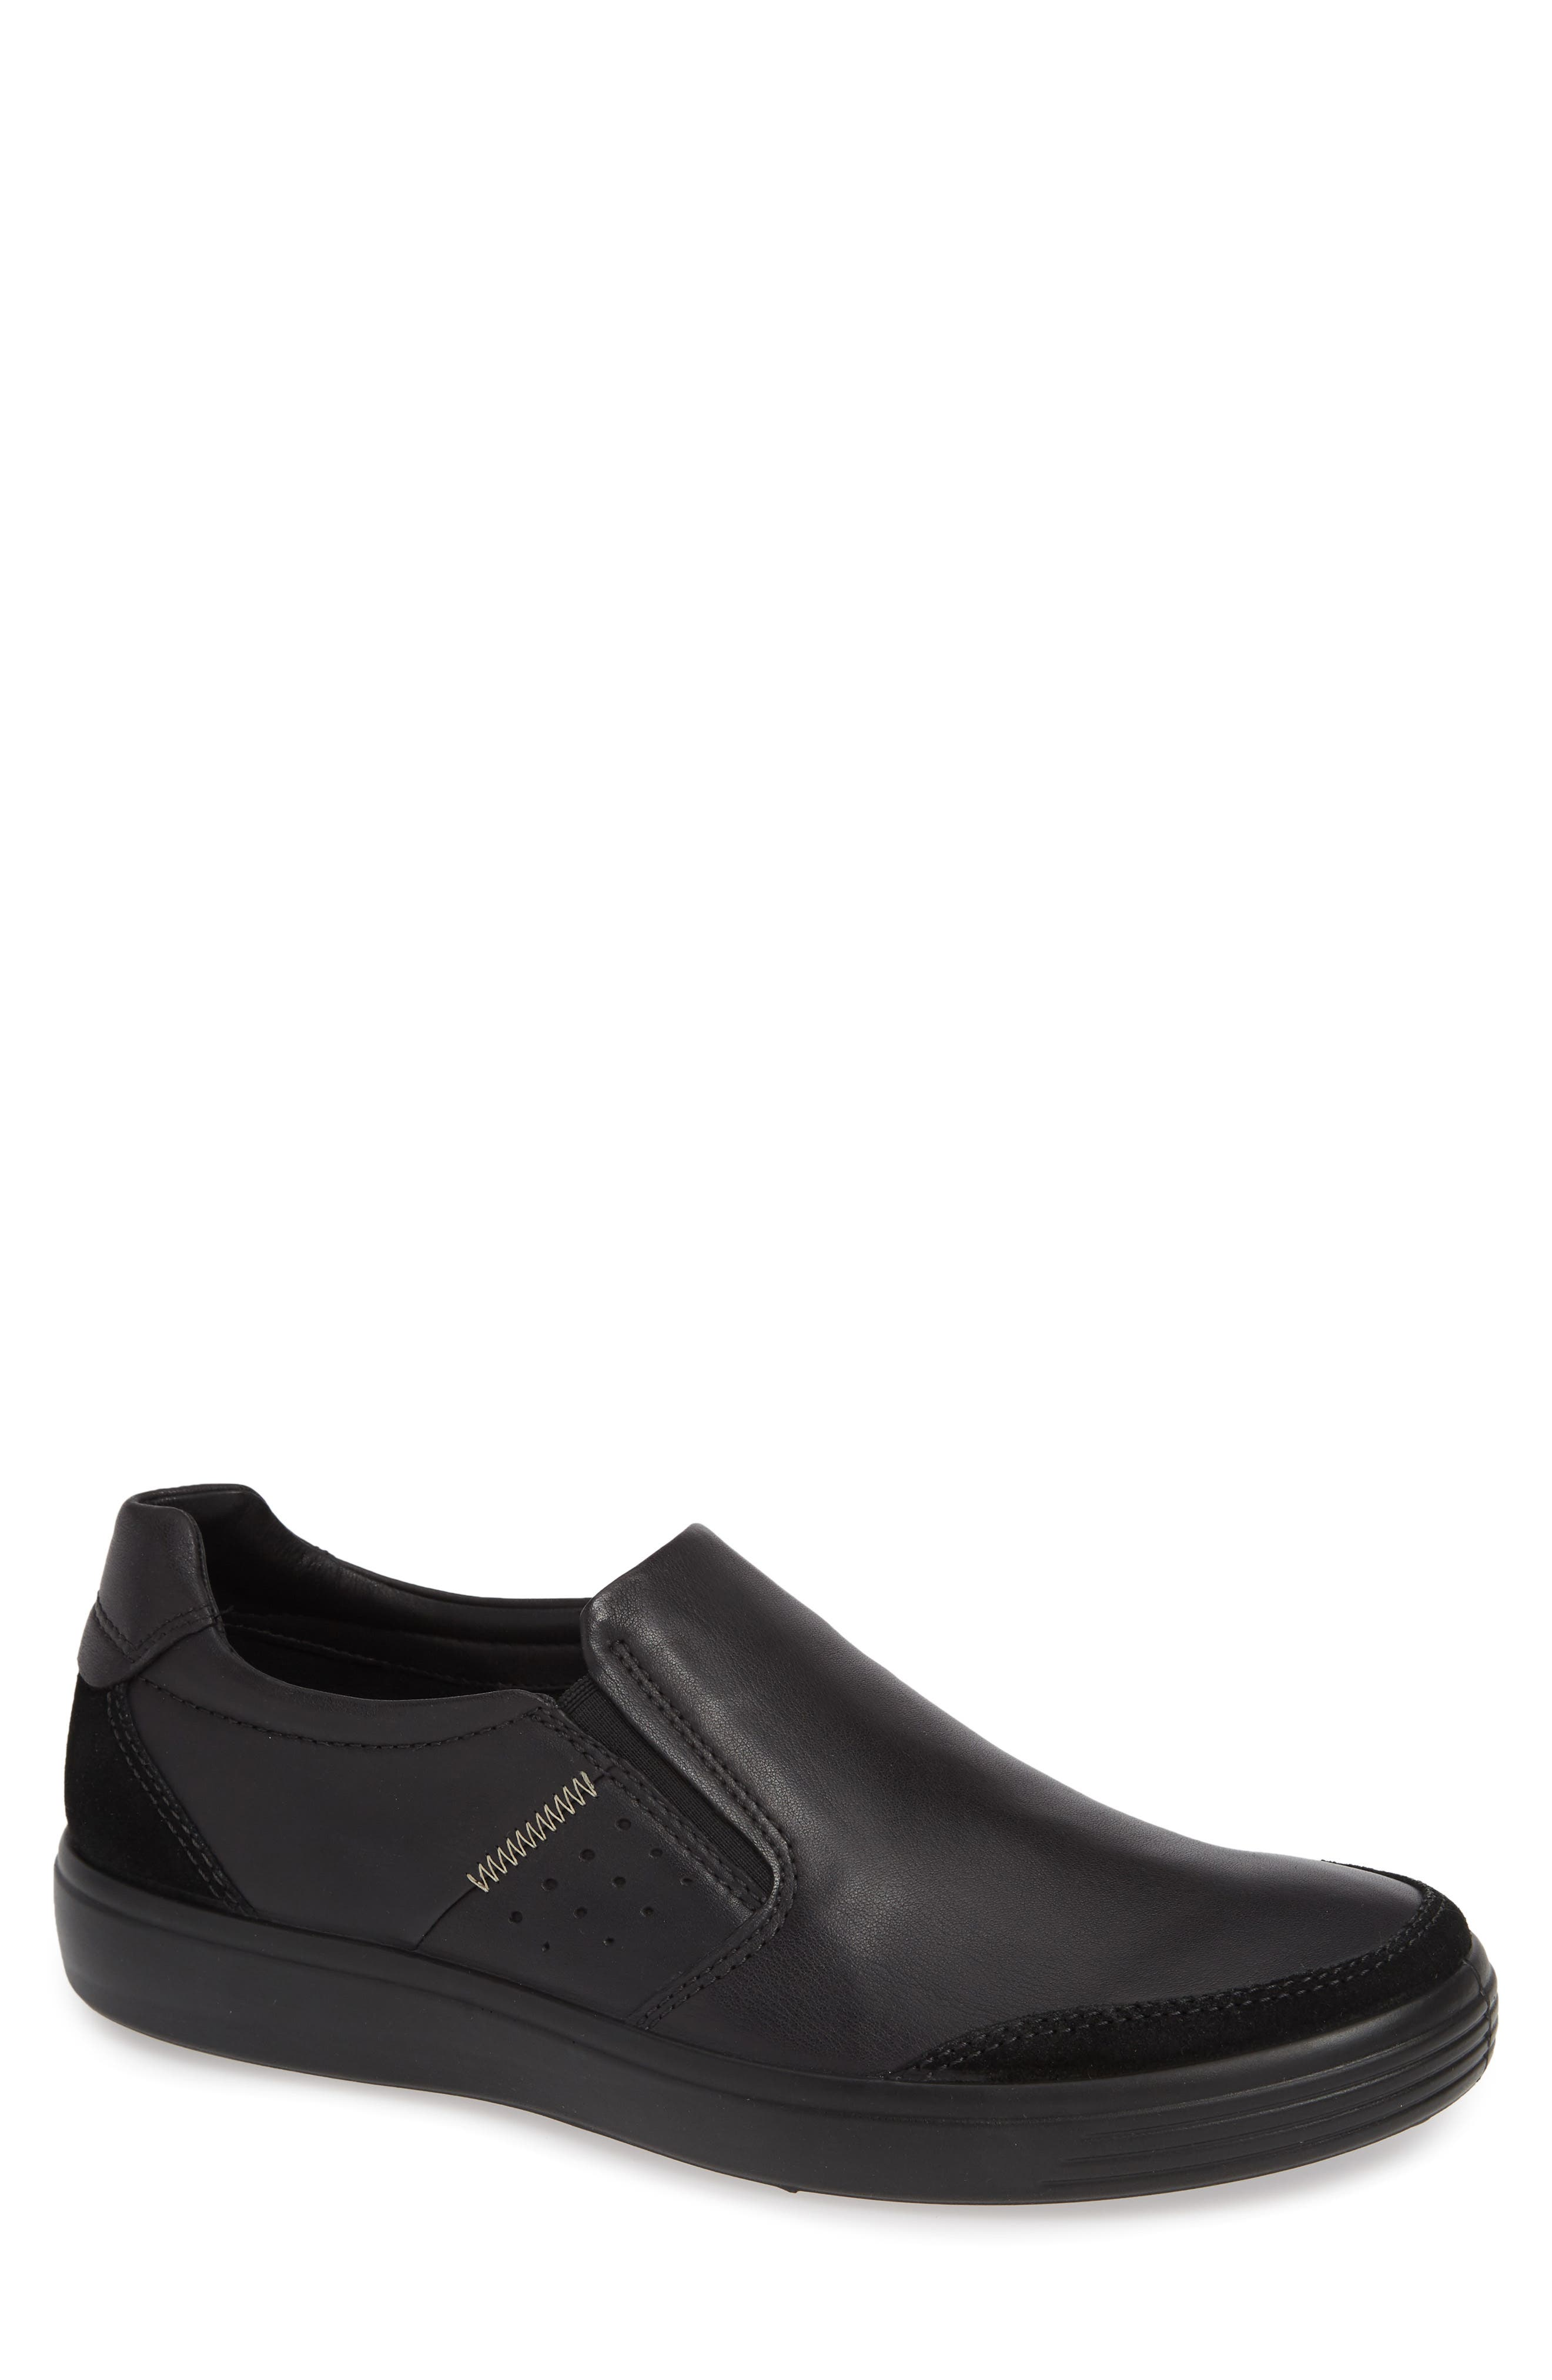 ECCO, Soft 7 Relaxed Slip-On, Main thumbnail 1, color, BLACK LEATHER